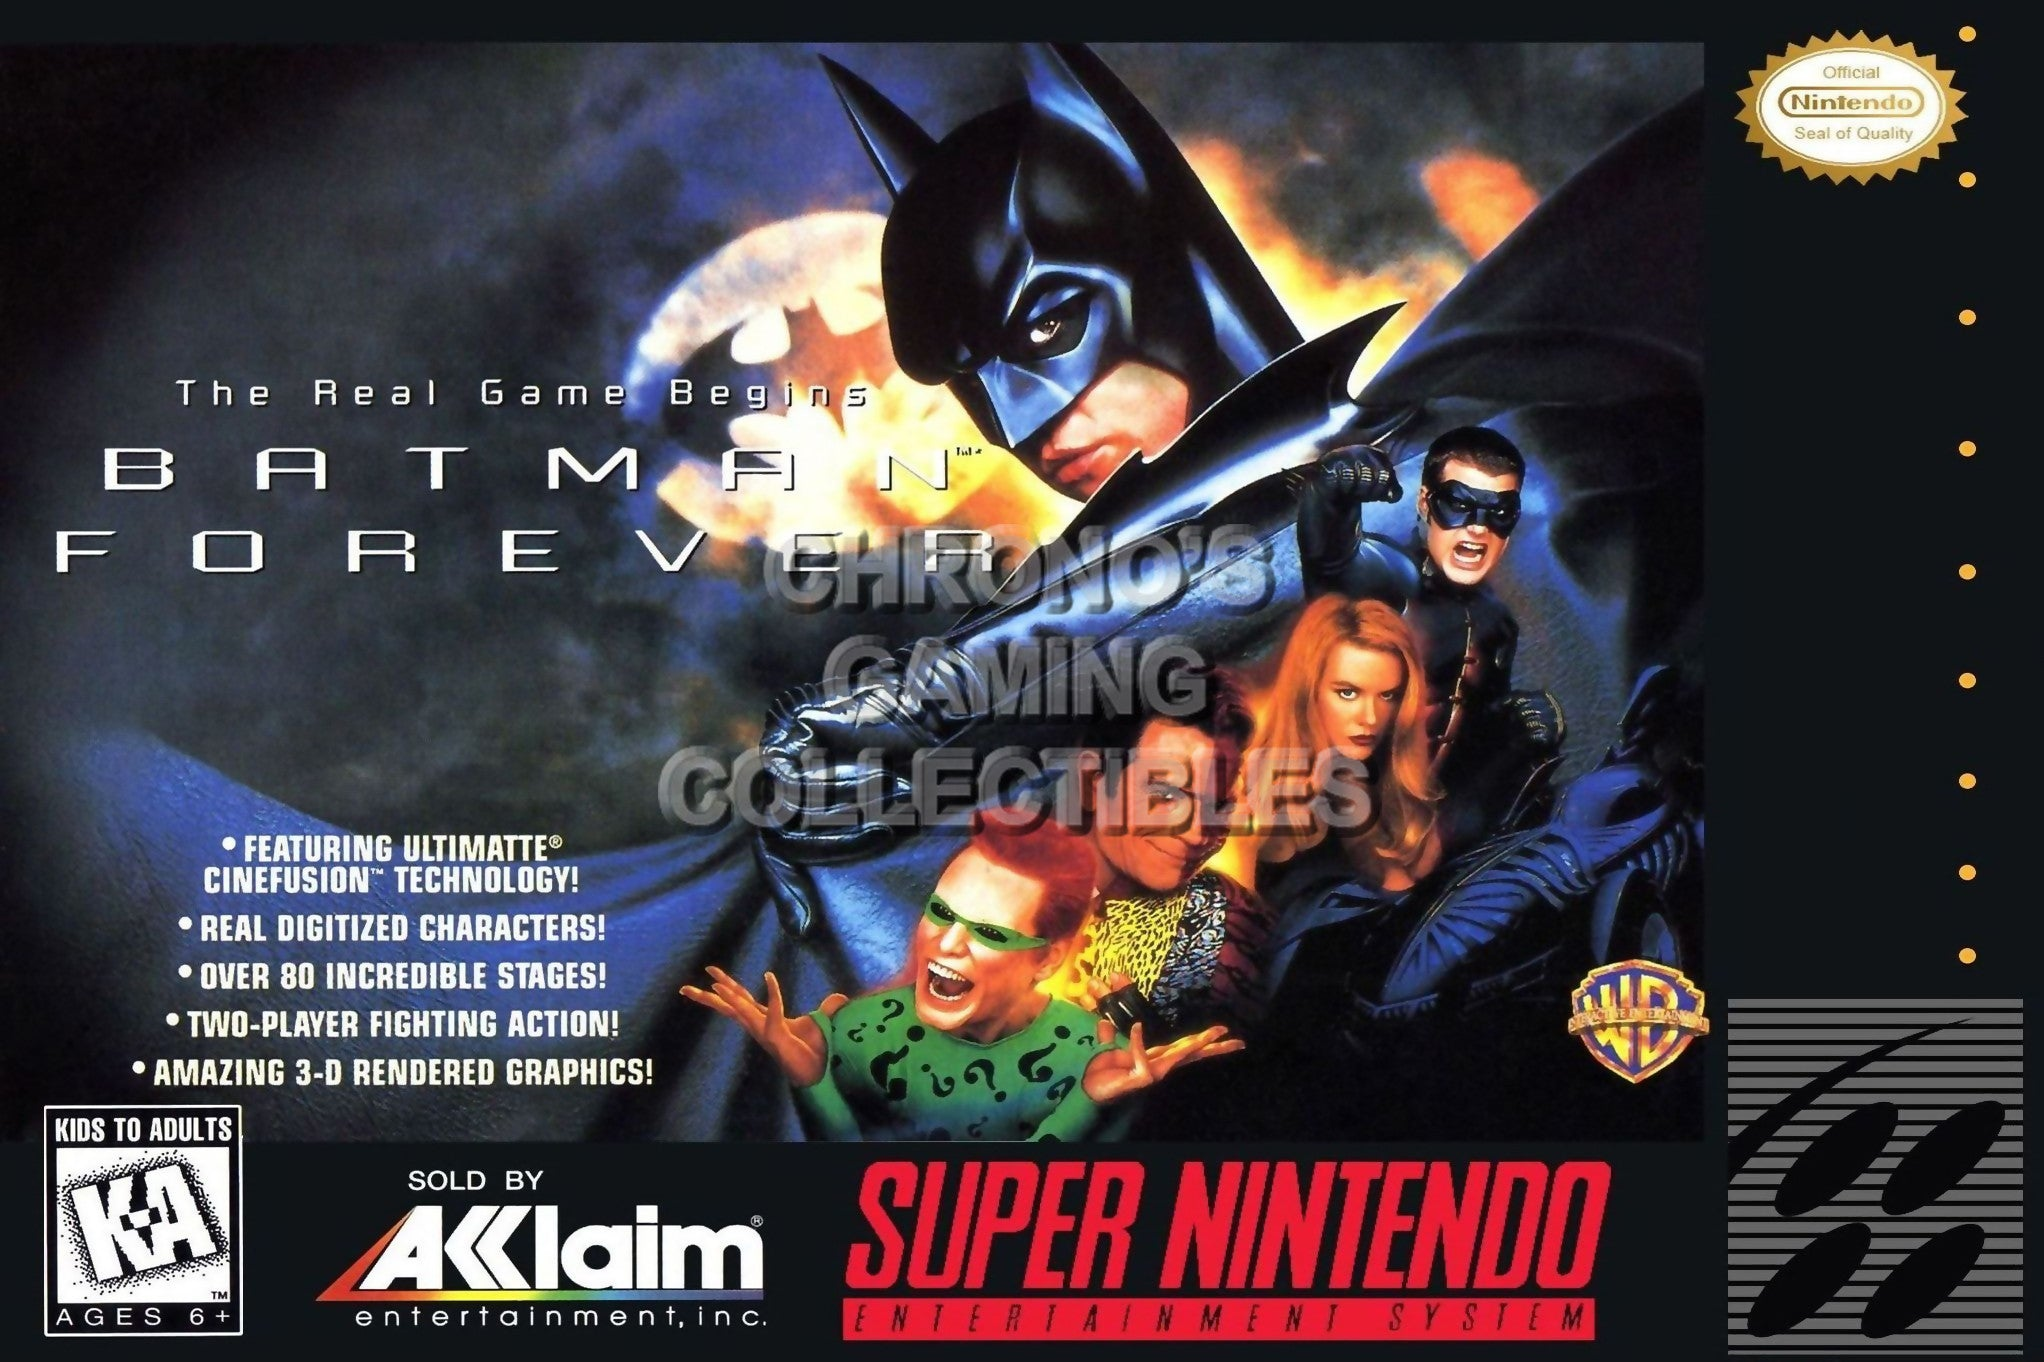 CGC Huge Poster - Batman Forever BOX ART Nintendo Super NES SNES - SNE49  Classic SNES